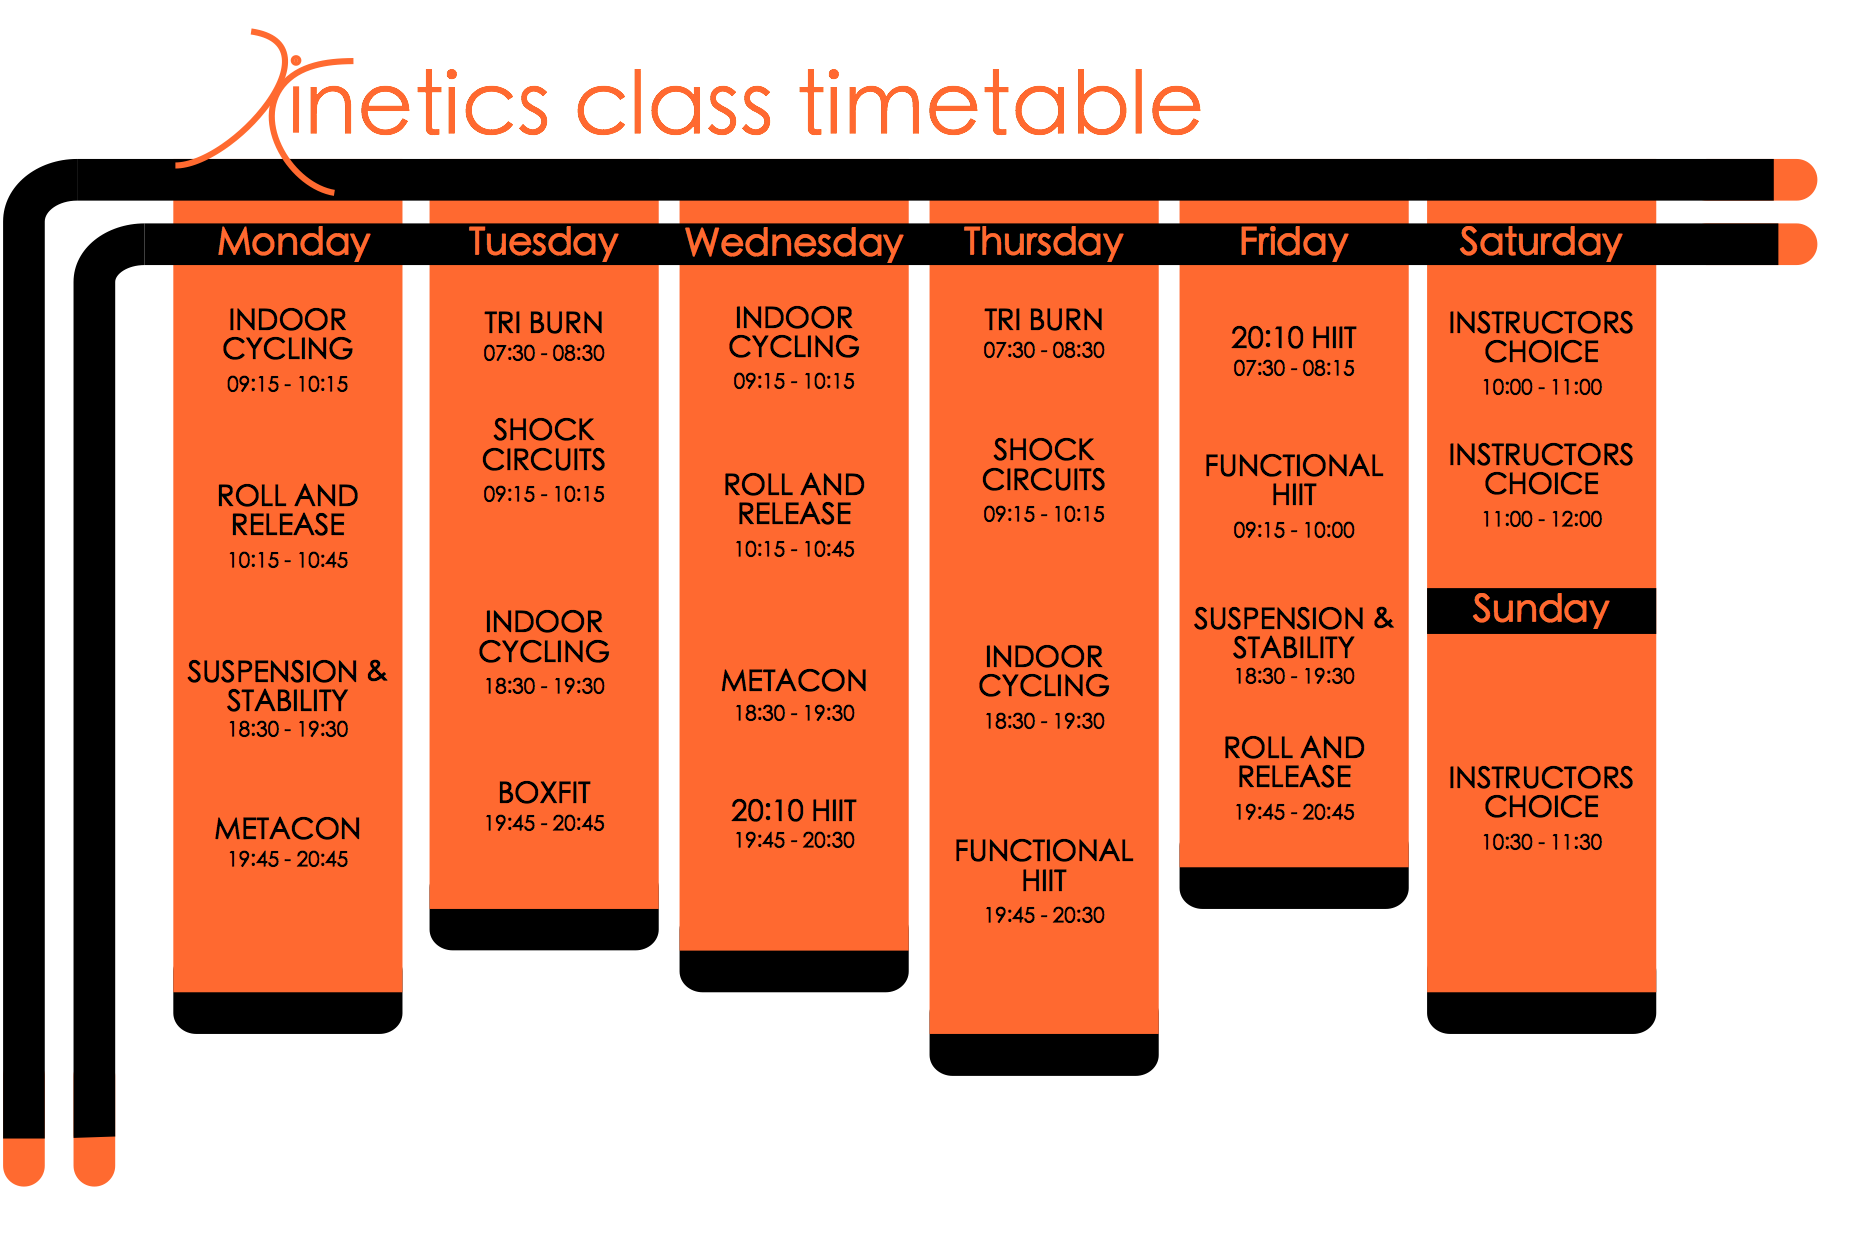 kinetics_timetable_inverse - PNG Timetable